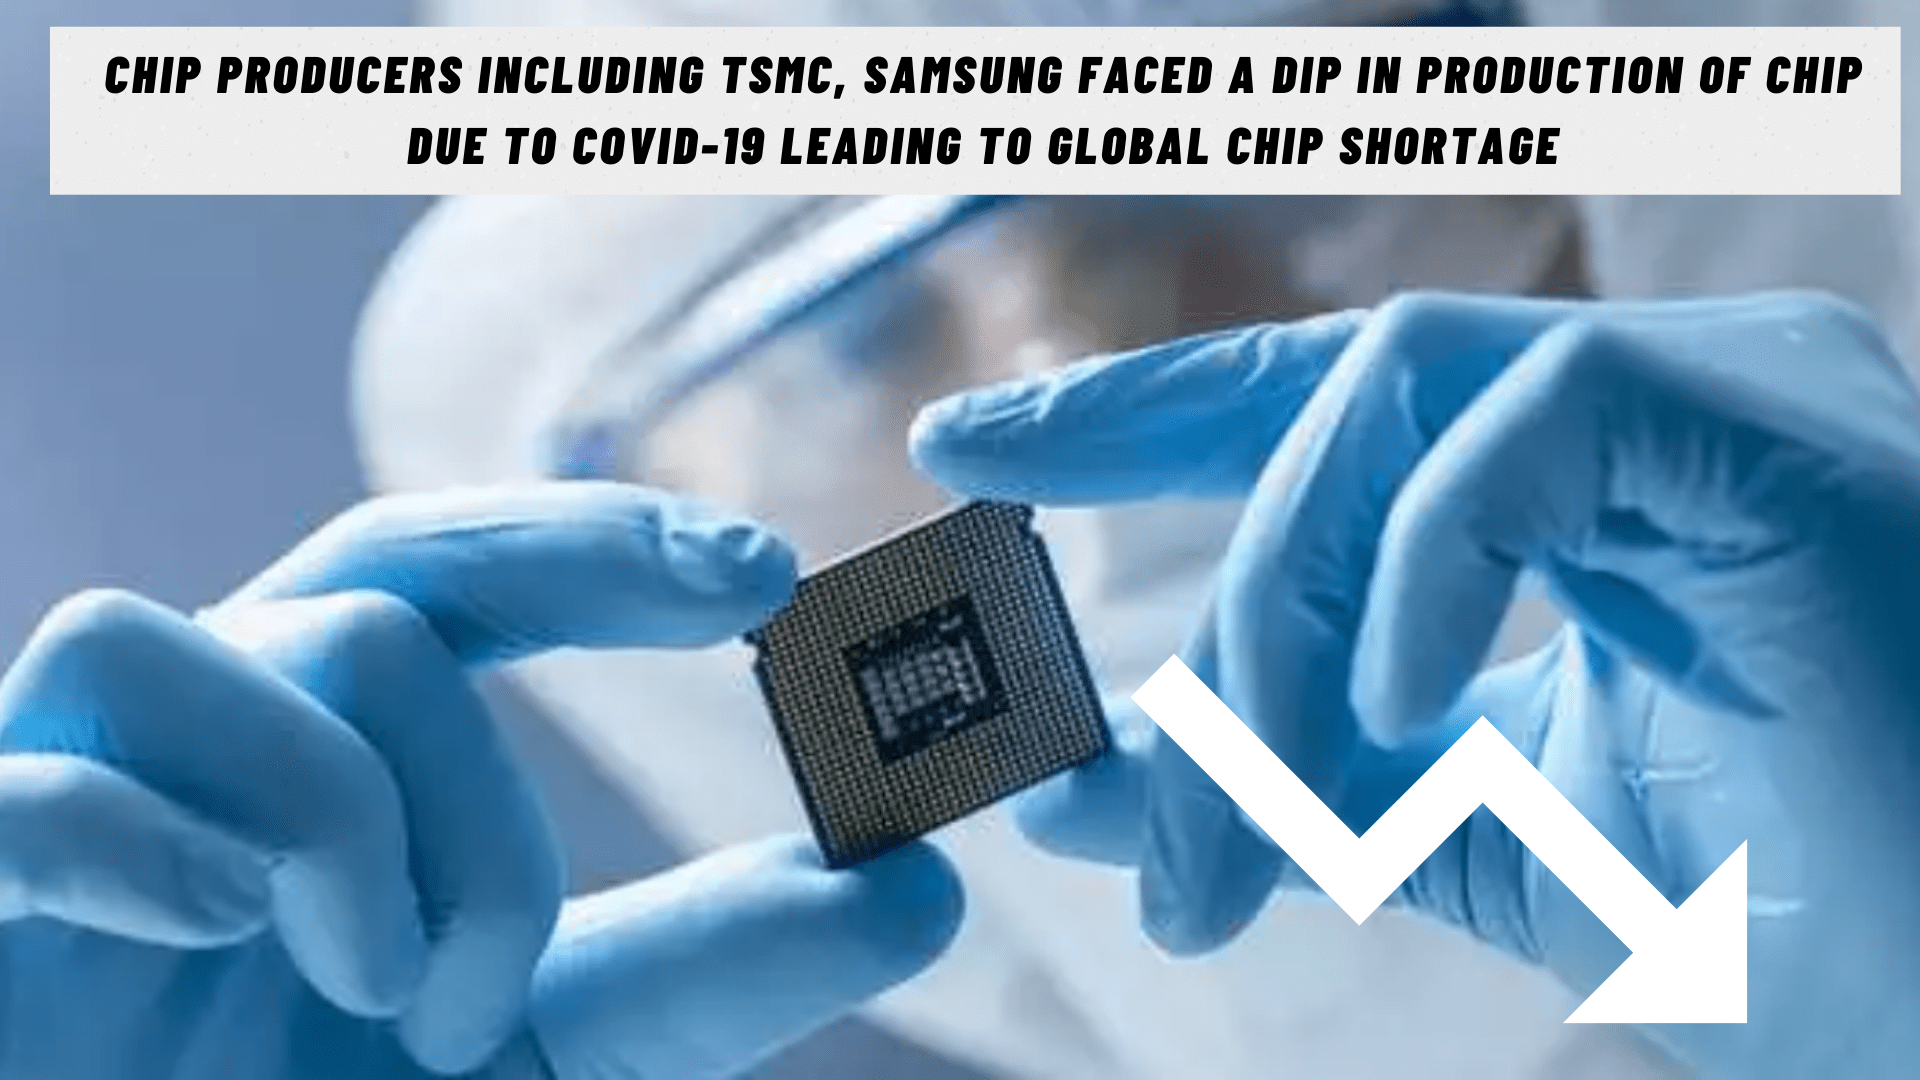 Chip Producers Including TSMC, Samsung Faced A Dip In Production Of Chip Due To COVID-19 Leading To Global Chip Shortage